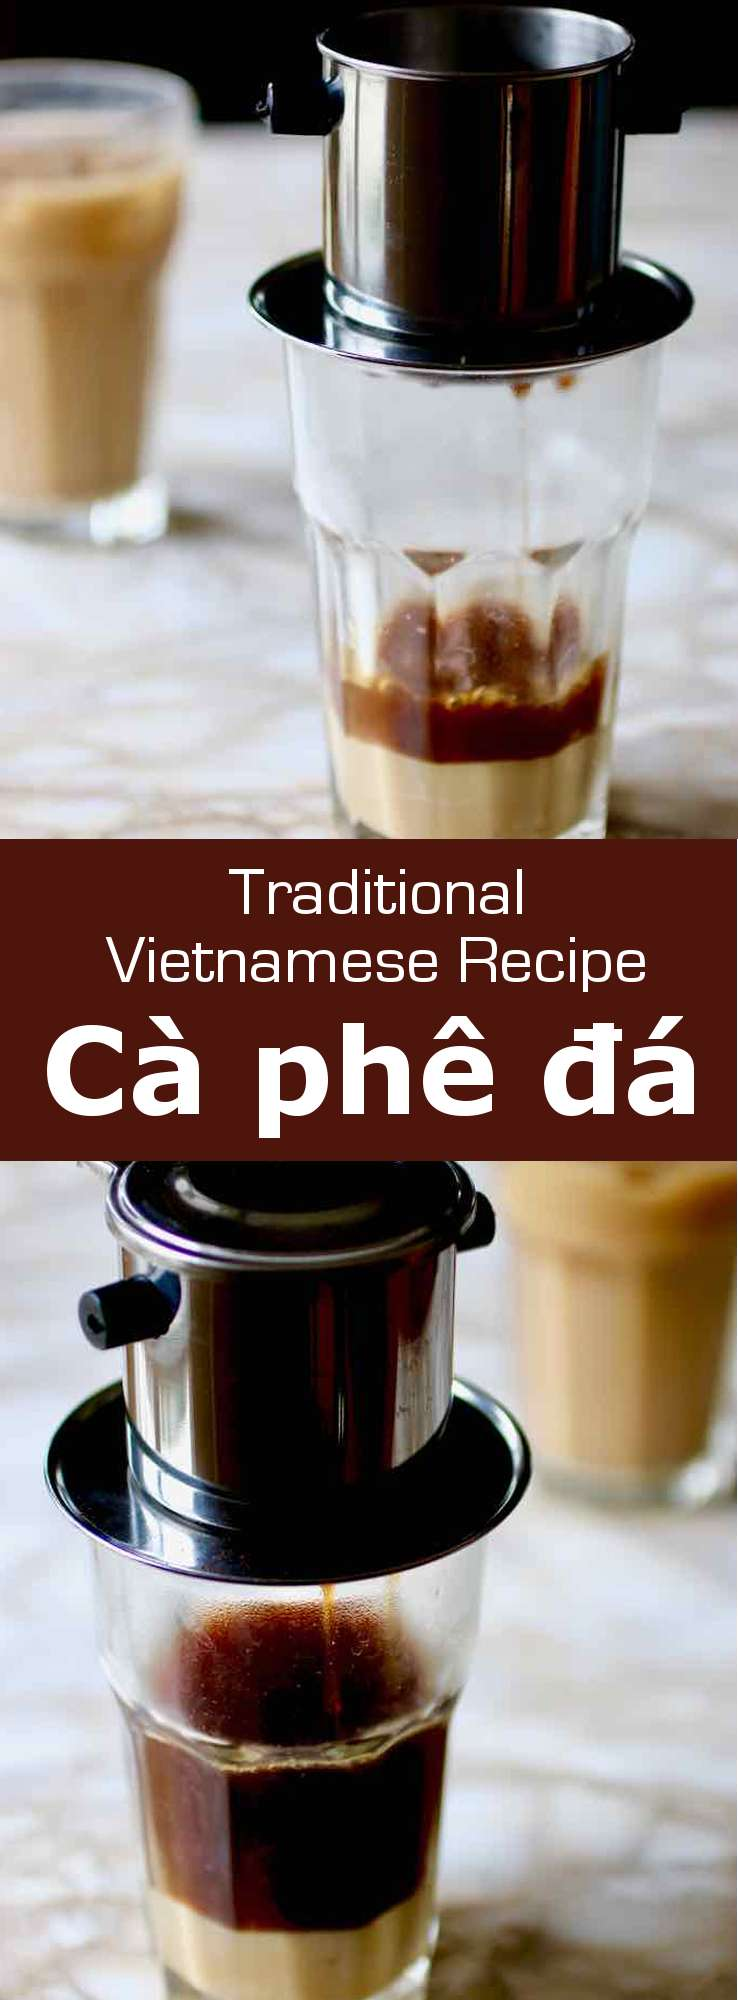 Cà phê đá is a popular Vietnamese iced coffee drink, prepared with Robusta drip-filtered coffee, poured over ice, and that is sweetened with condensed milk. #Vietnam #VietnameseDrink #VietnameseBeverage #VietnameseRecipe #AsianRecipe #AsianDrink #WorldCuisine #196flavors